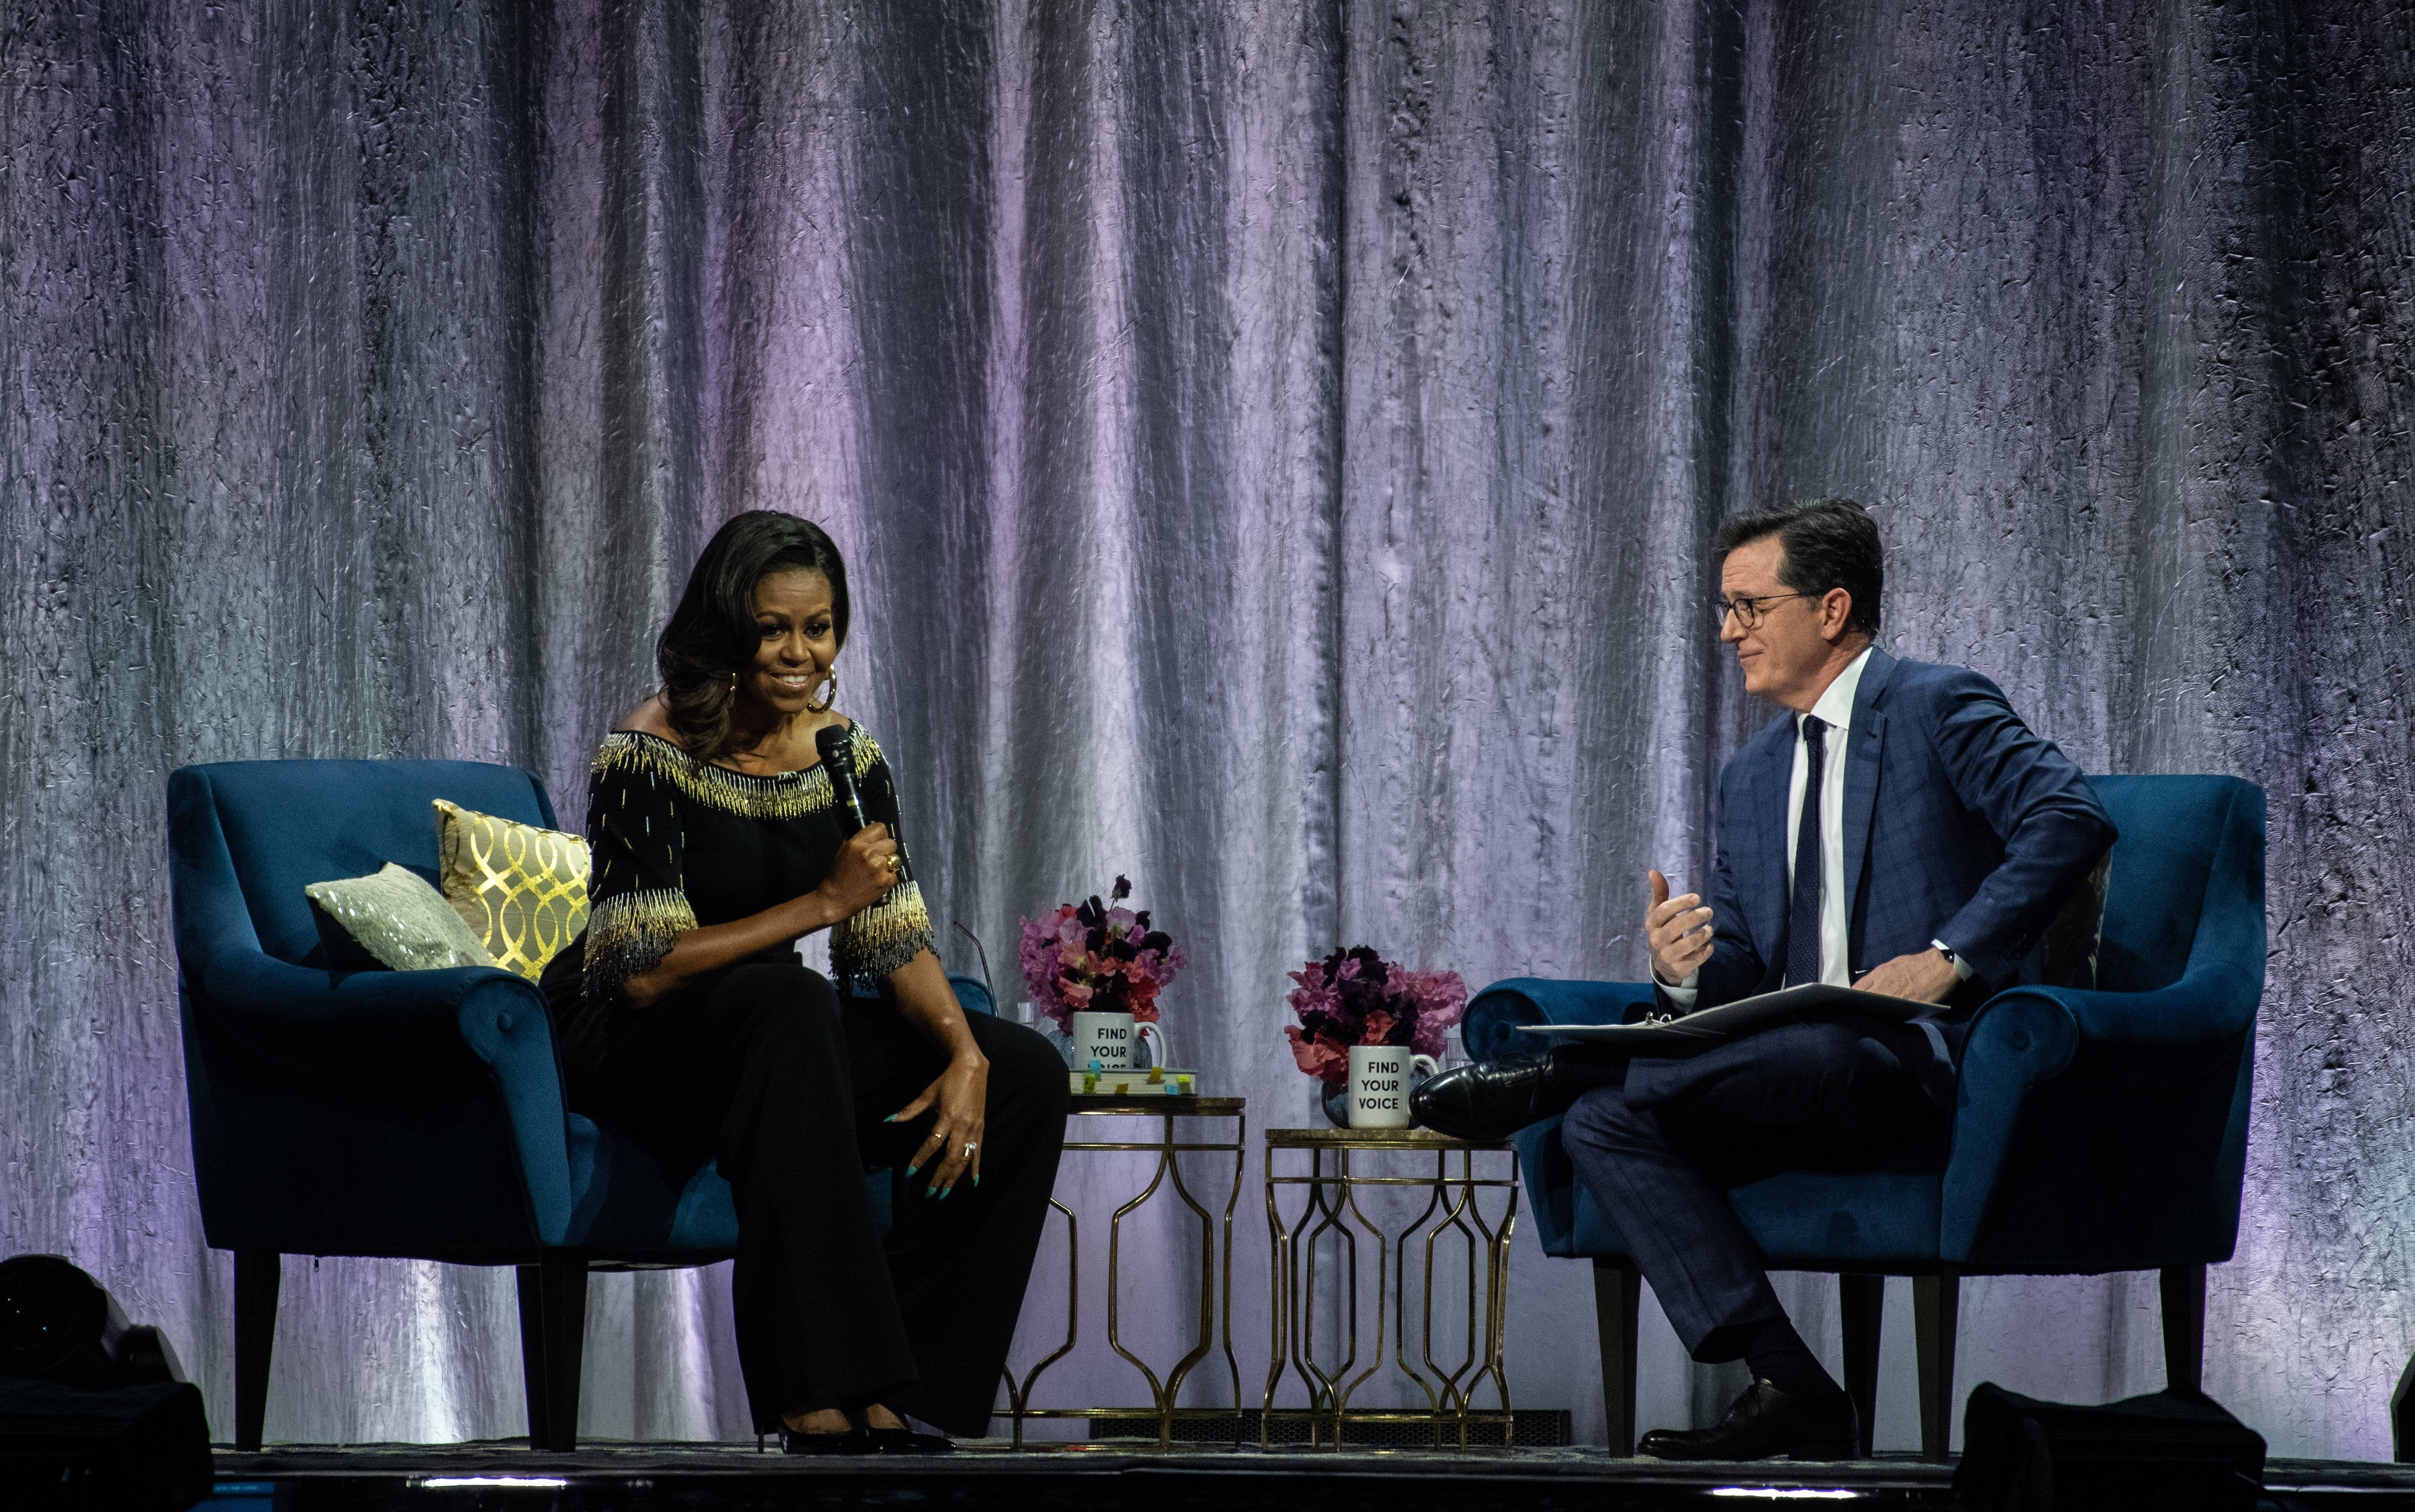 Michelle Obama on stage as part of her 'Becoming: An Intimate Conversation With Michelle Obama' tour at The O2 Arena on April 14, 2019 in London, England | Photo: Getty Images